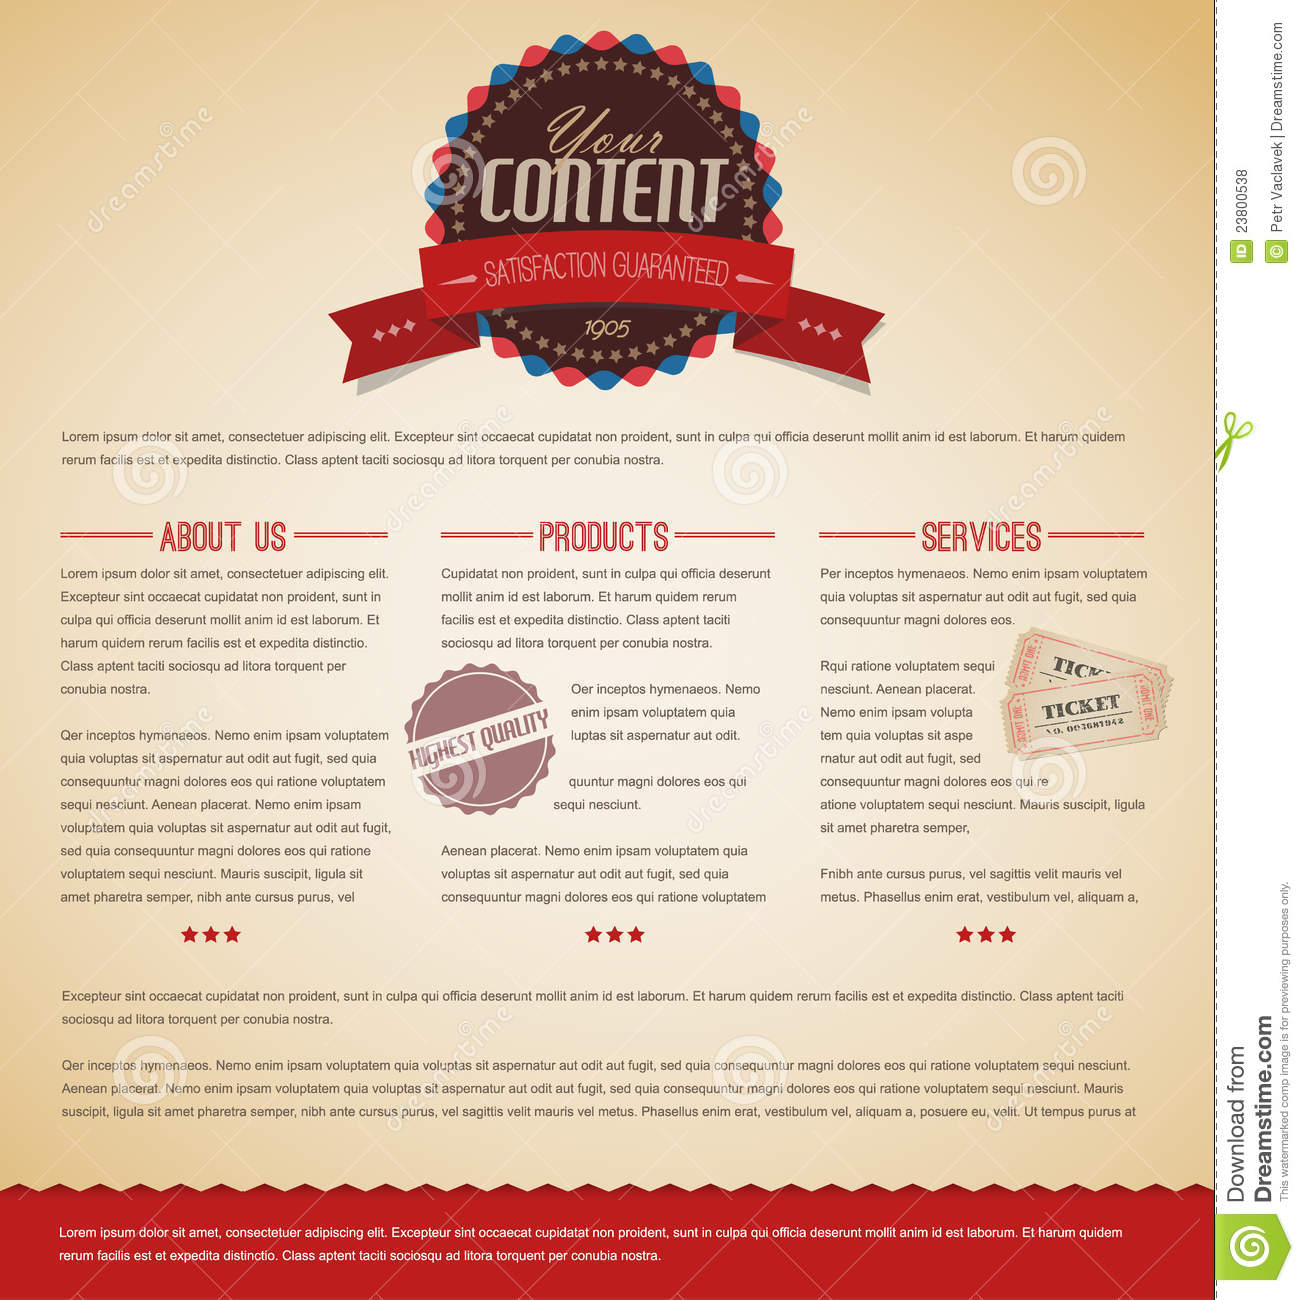 Retro Html Templates Retro Vintage Web Page Template Royalty Free Stock Photos ...